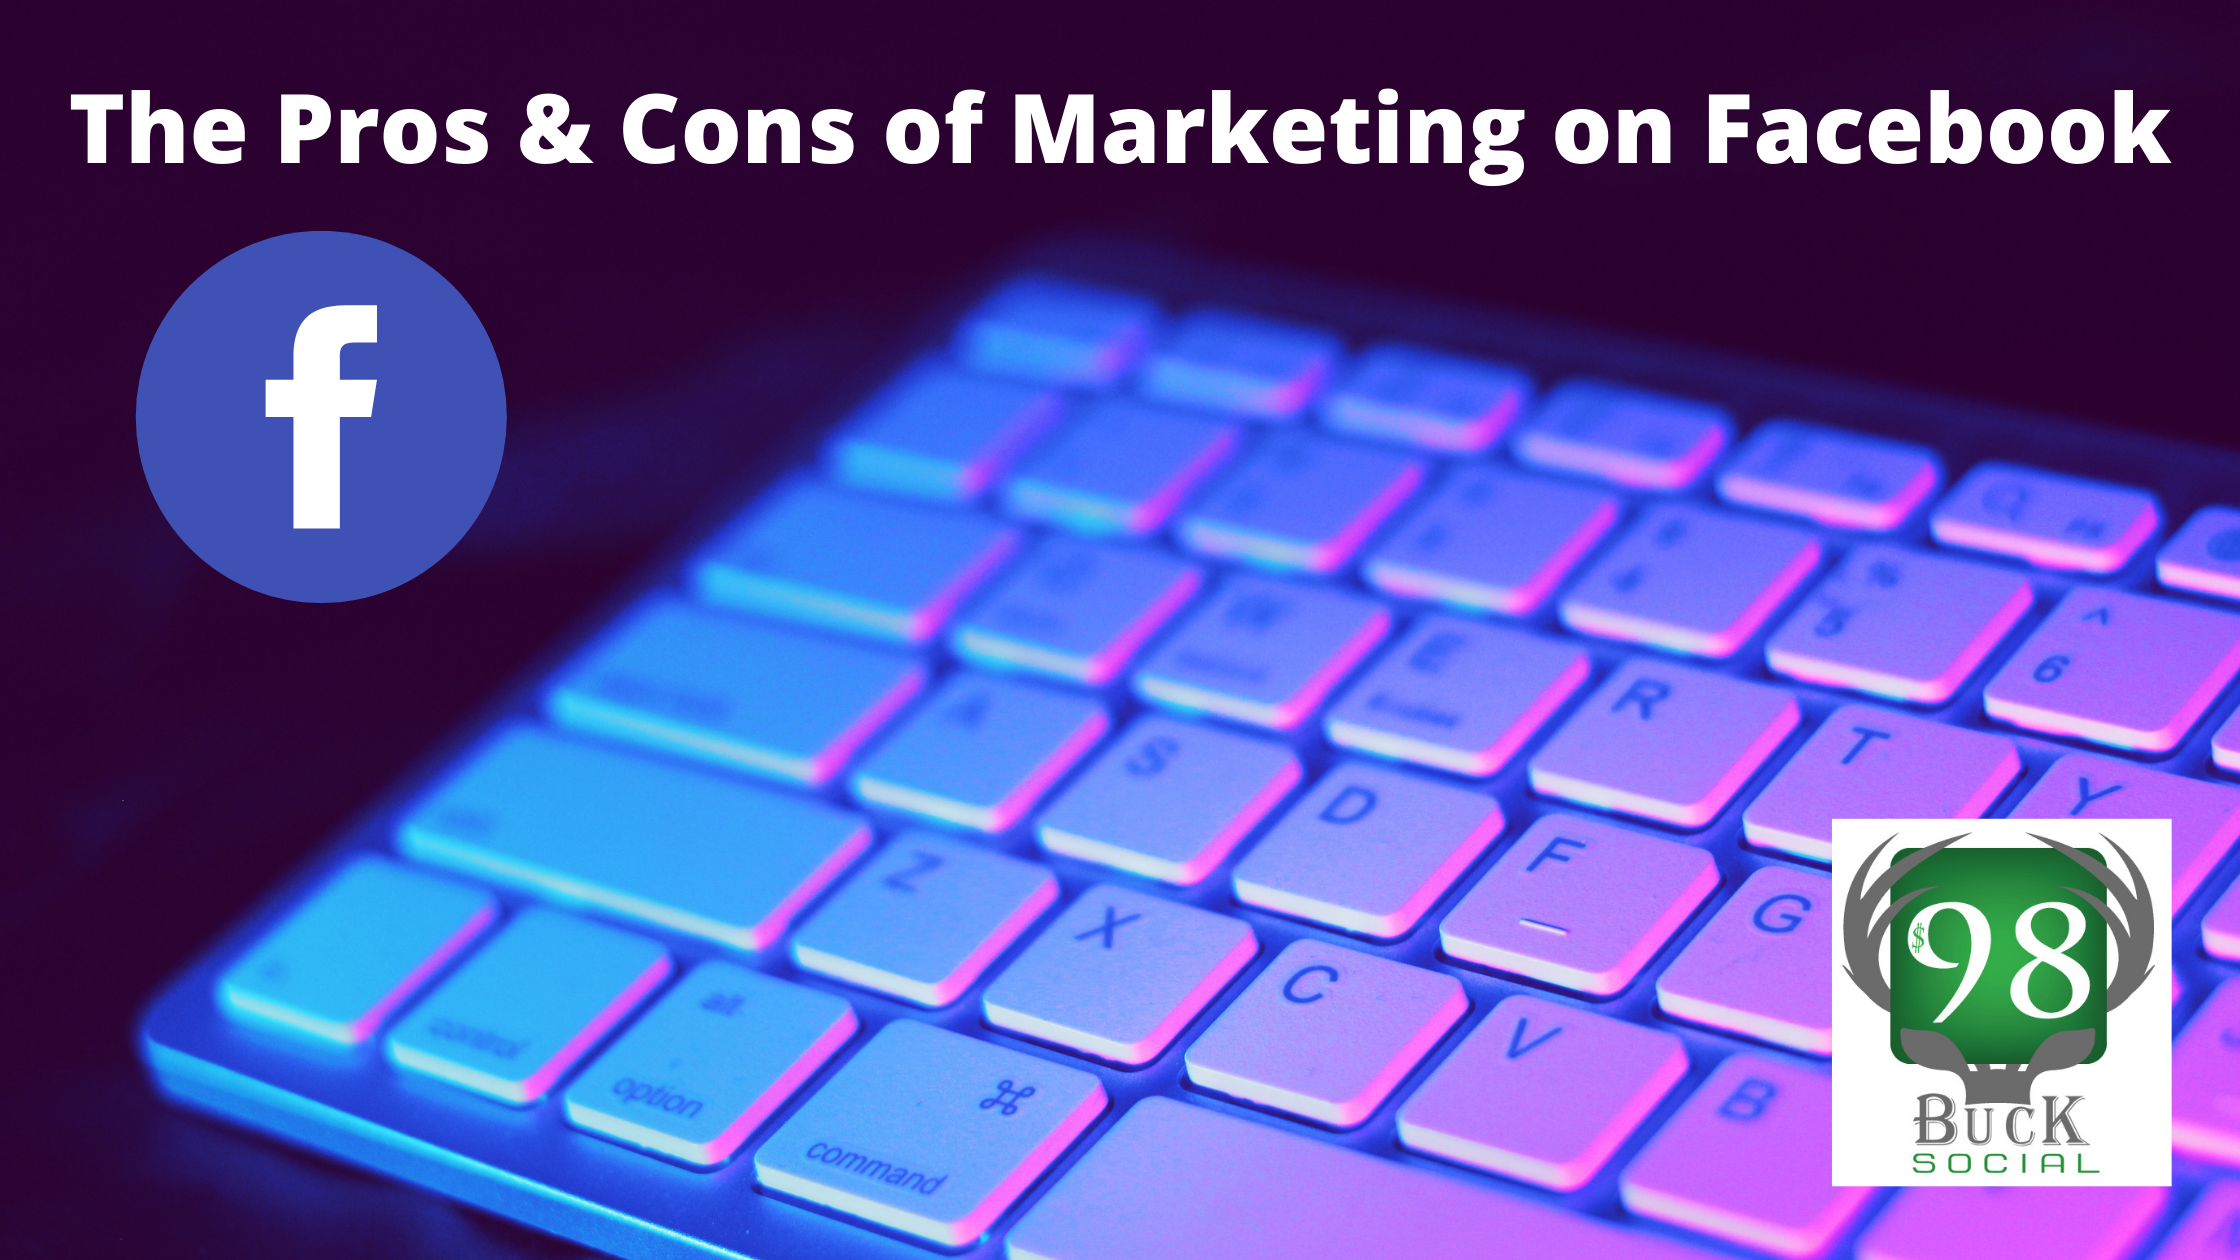 The Pros and Cons of Marketing on Facebook